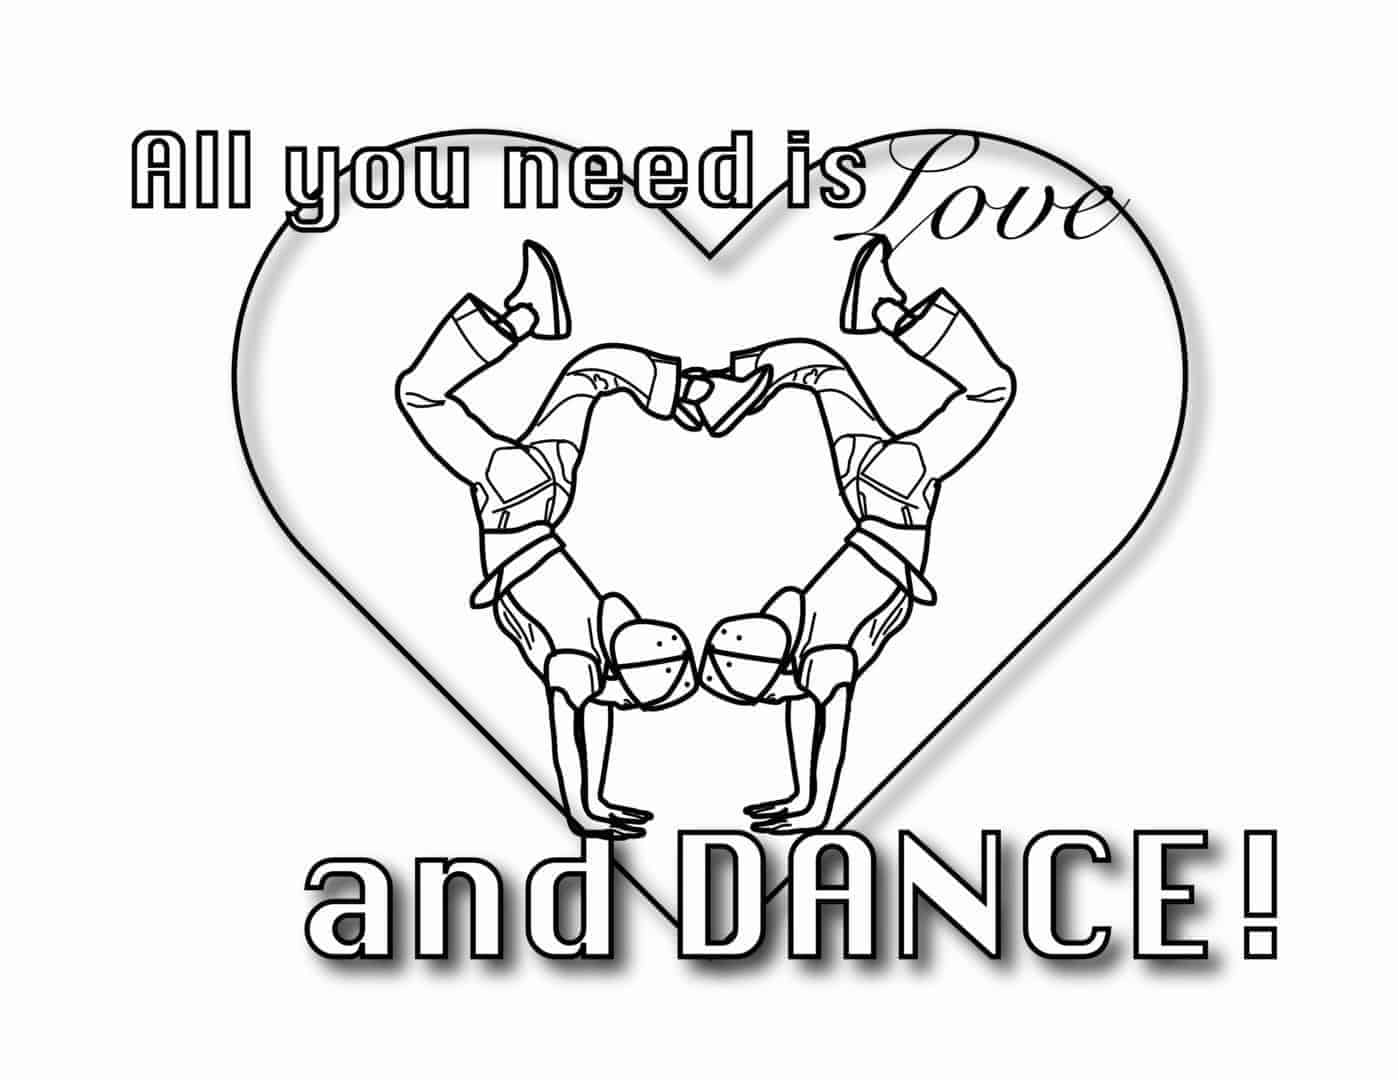 All Your Need is Love 3-01